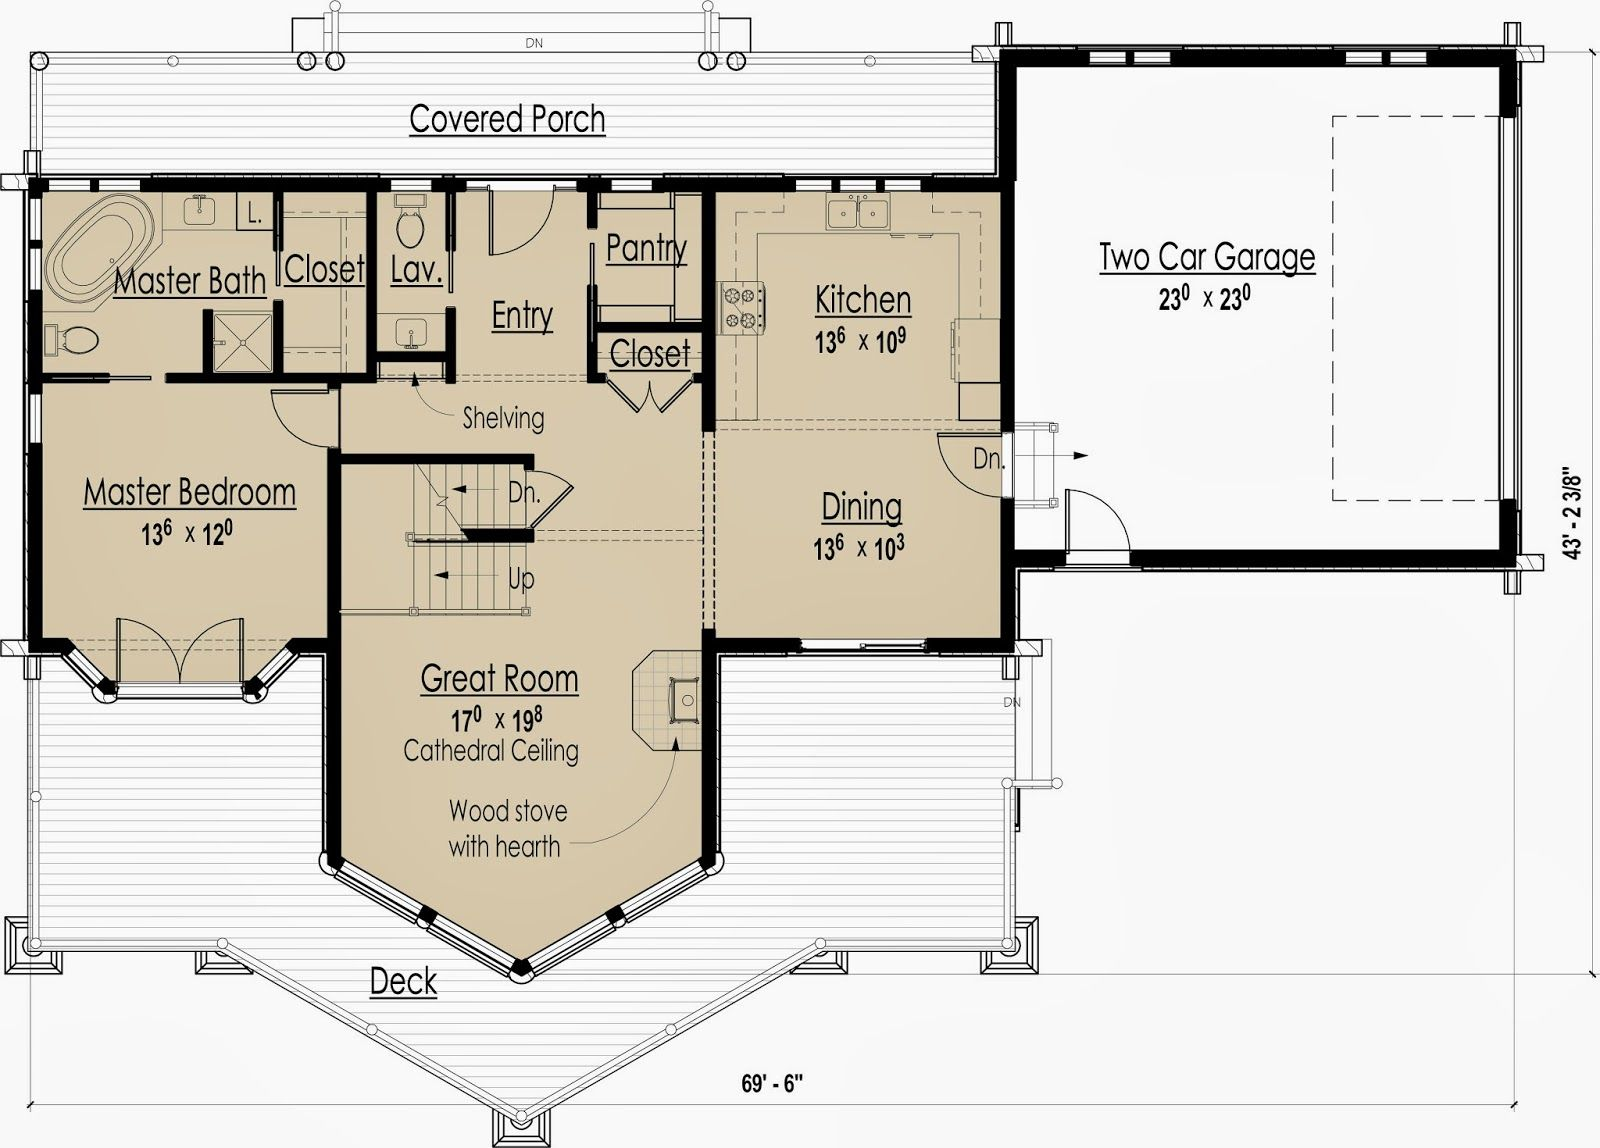 Home Plans Eco Friendly Summer Floor Plan Modern House Insight Designs India Energy Efficient House Plans House Floor Plans Energy Efficient Homes